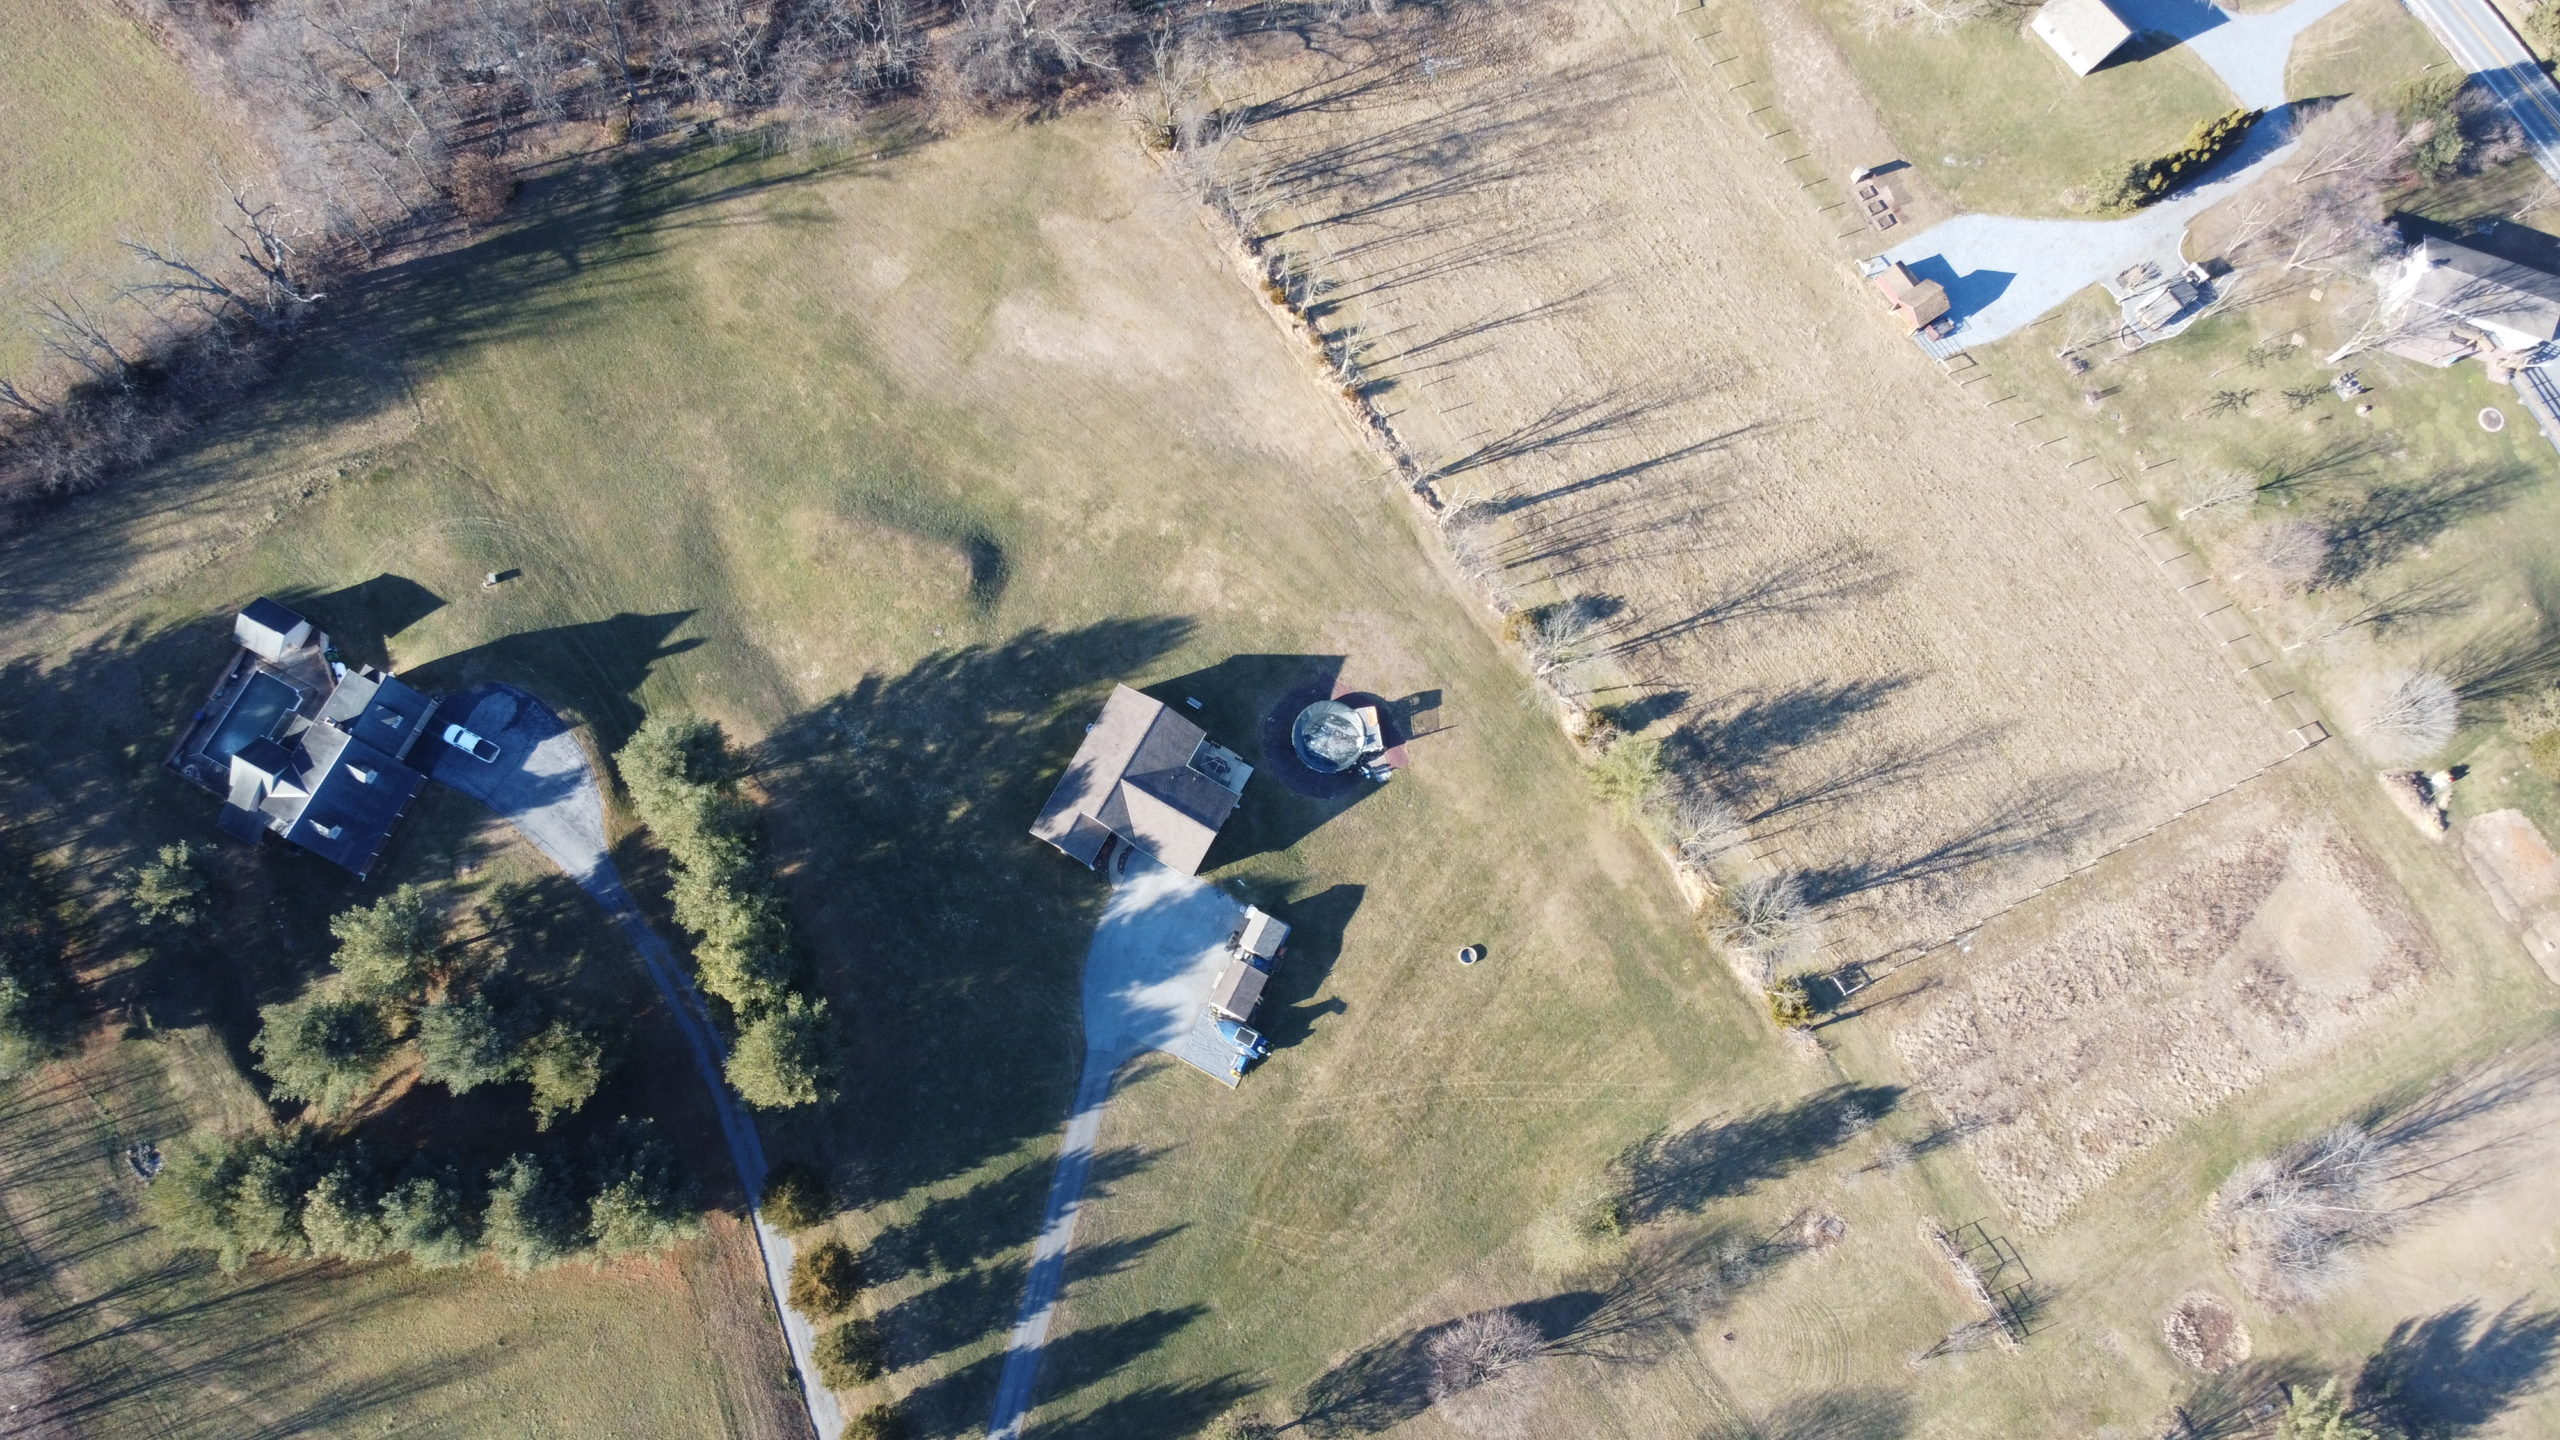 26 W. Strack Drive - Drone View of ELCO Home with Land